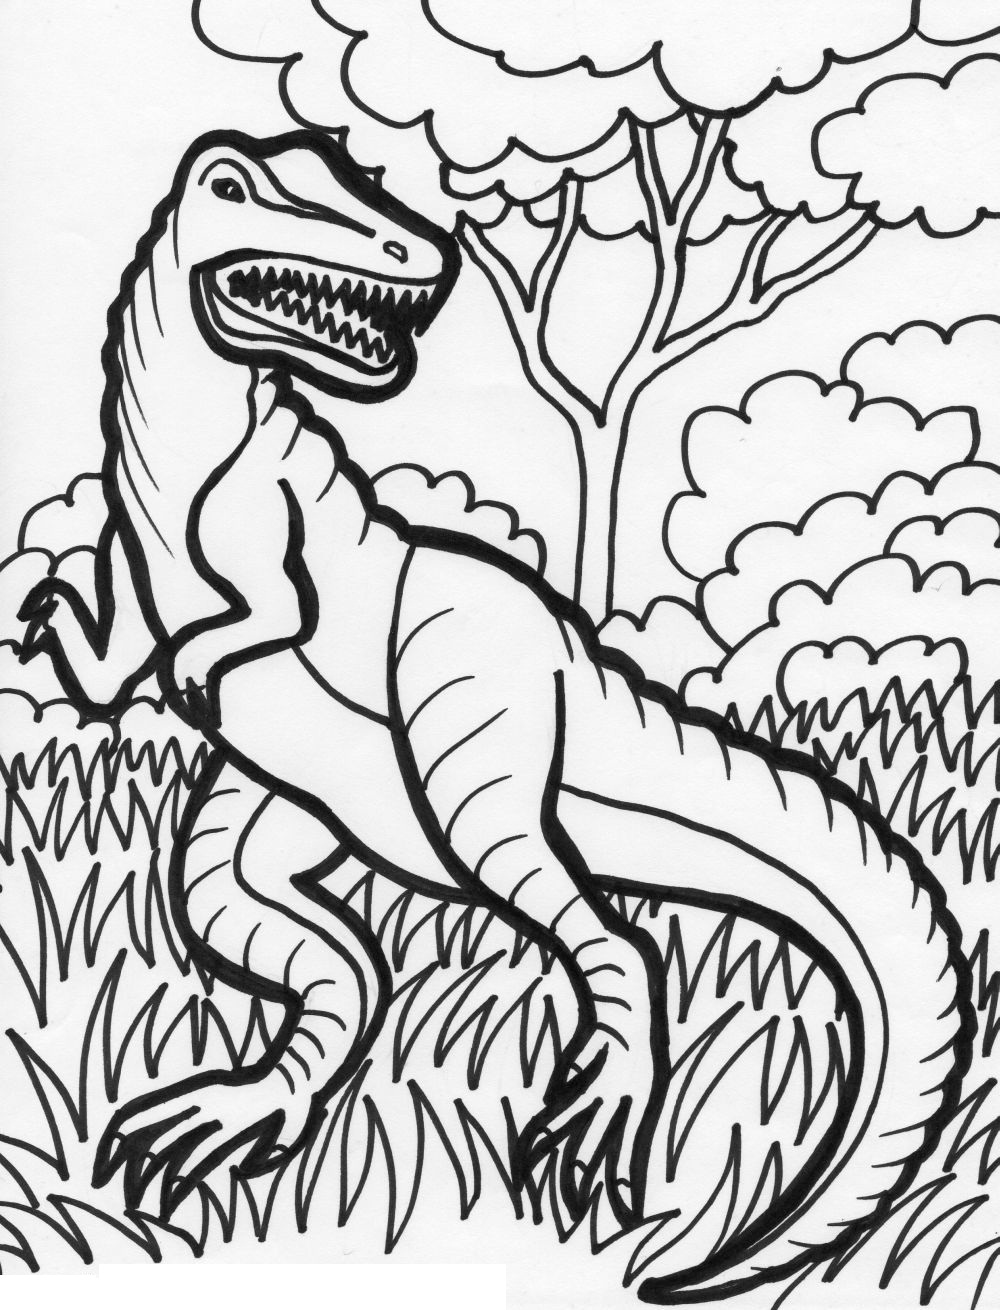 free printable dinosaur coloring pages free printable dinosaur coloring pages for kids dinosaur coloring printable pages free